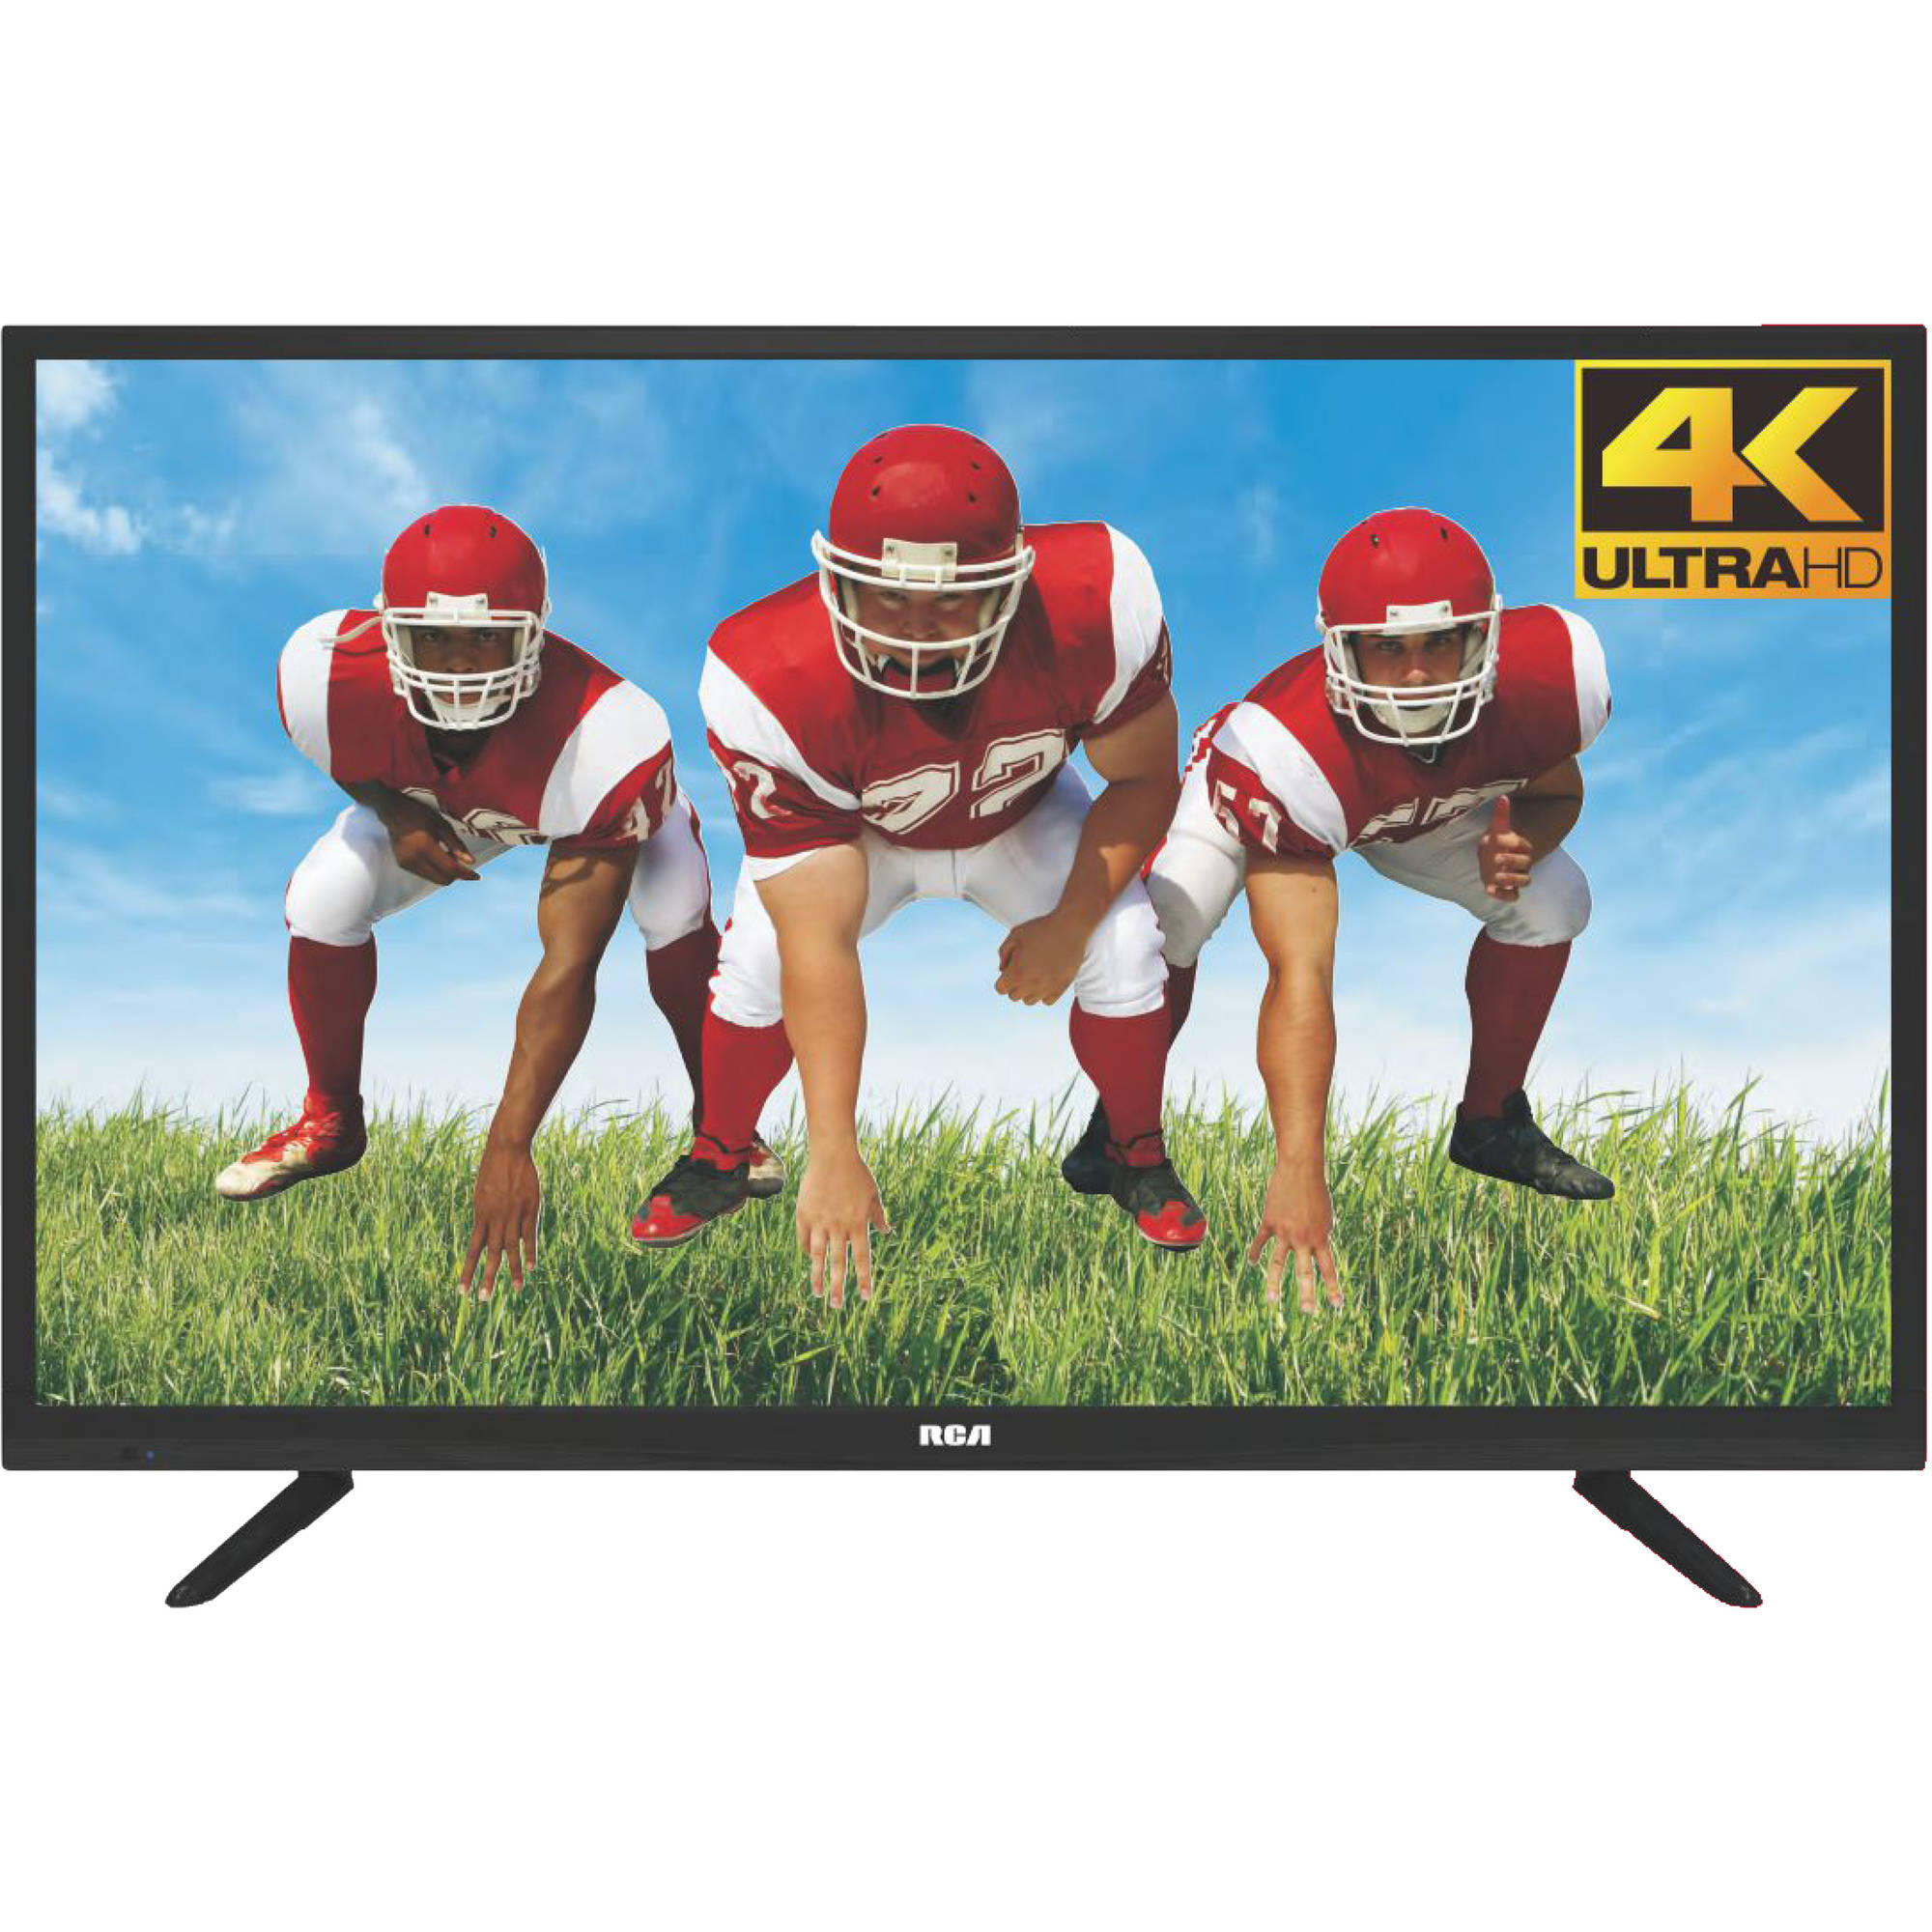 "RCA 40"" Class 4K (2160P) LED TV (RTU4002) by RCA"